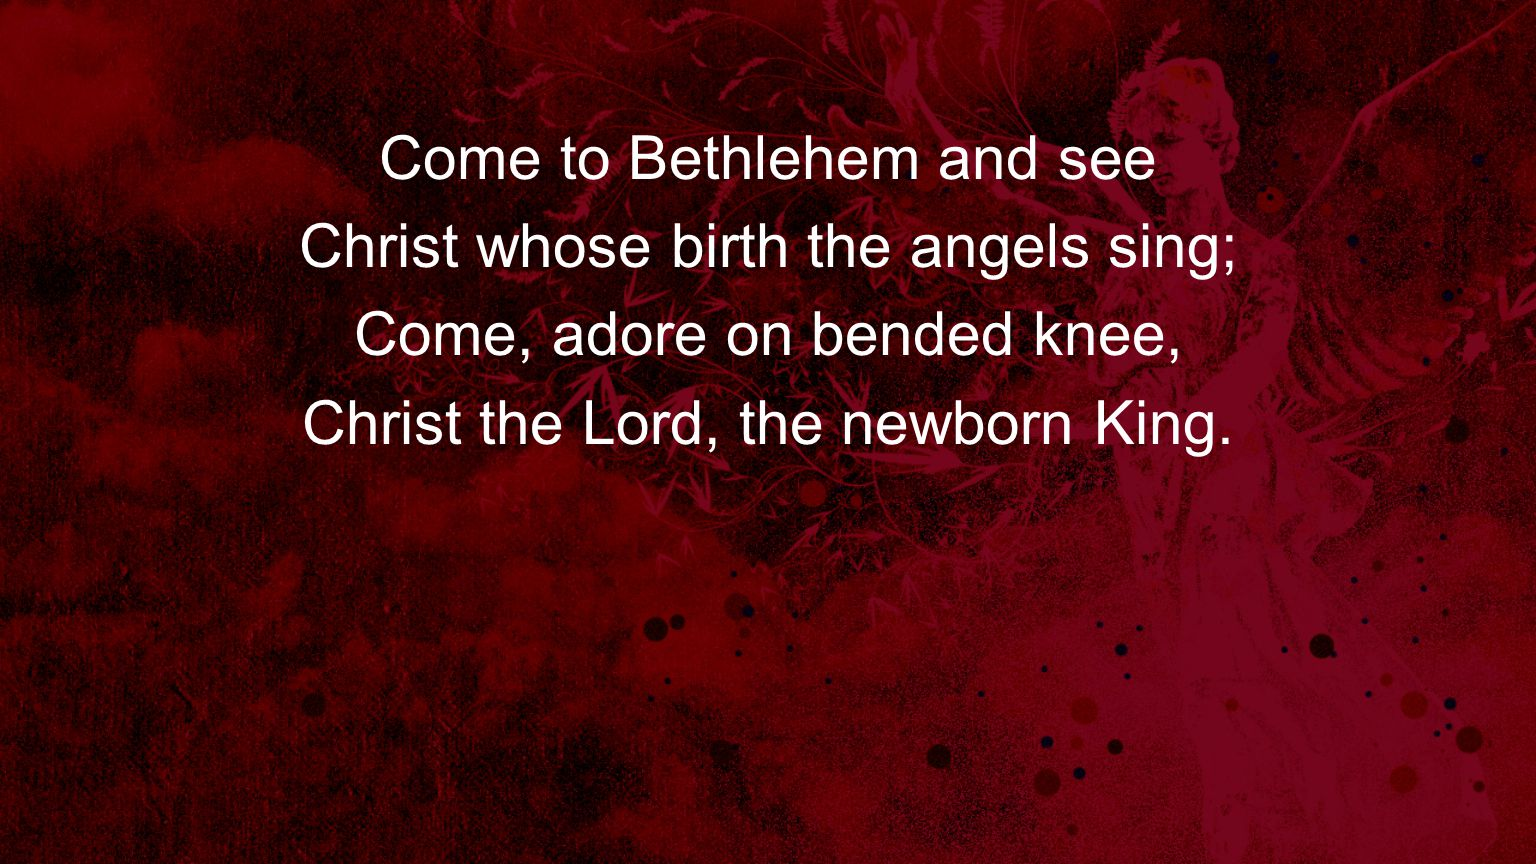 Come to Bethlehem and see Christ whose birth the angels sing;